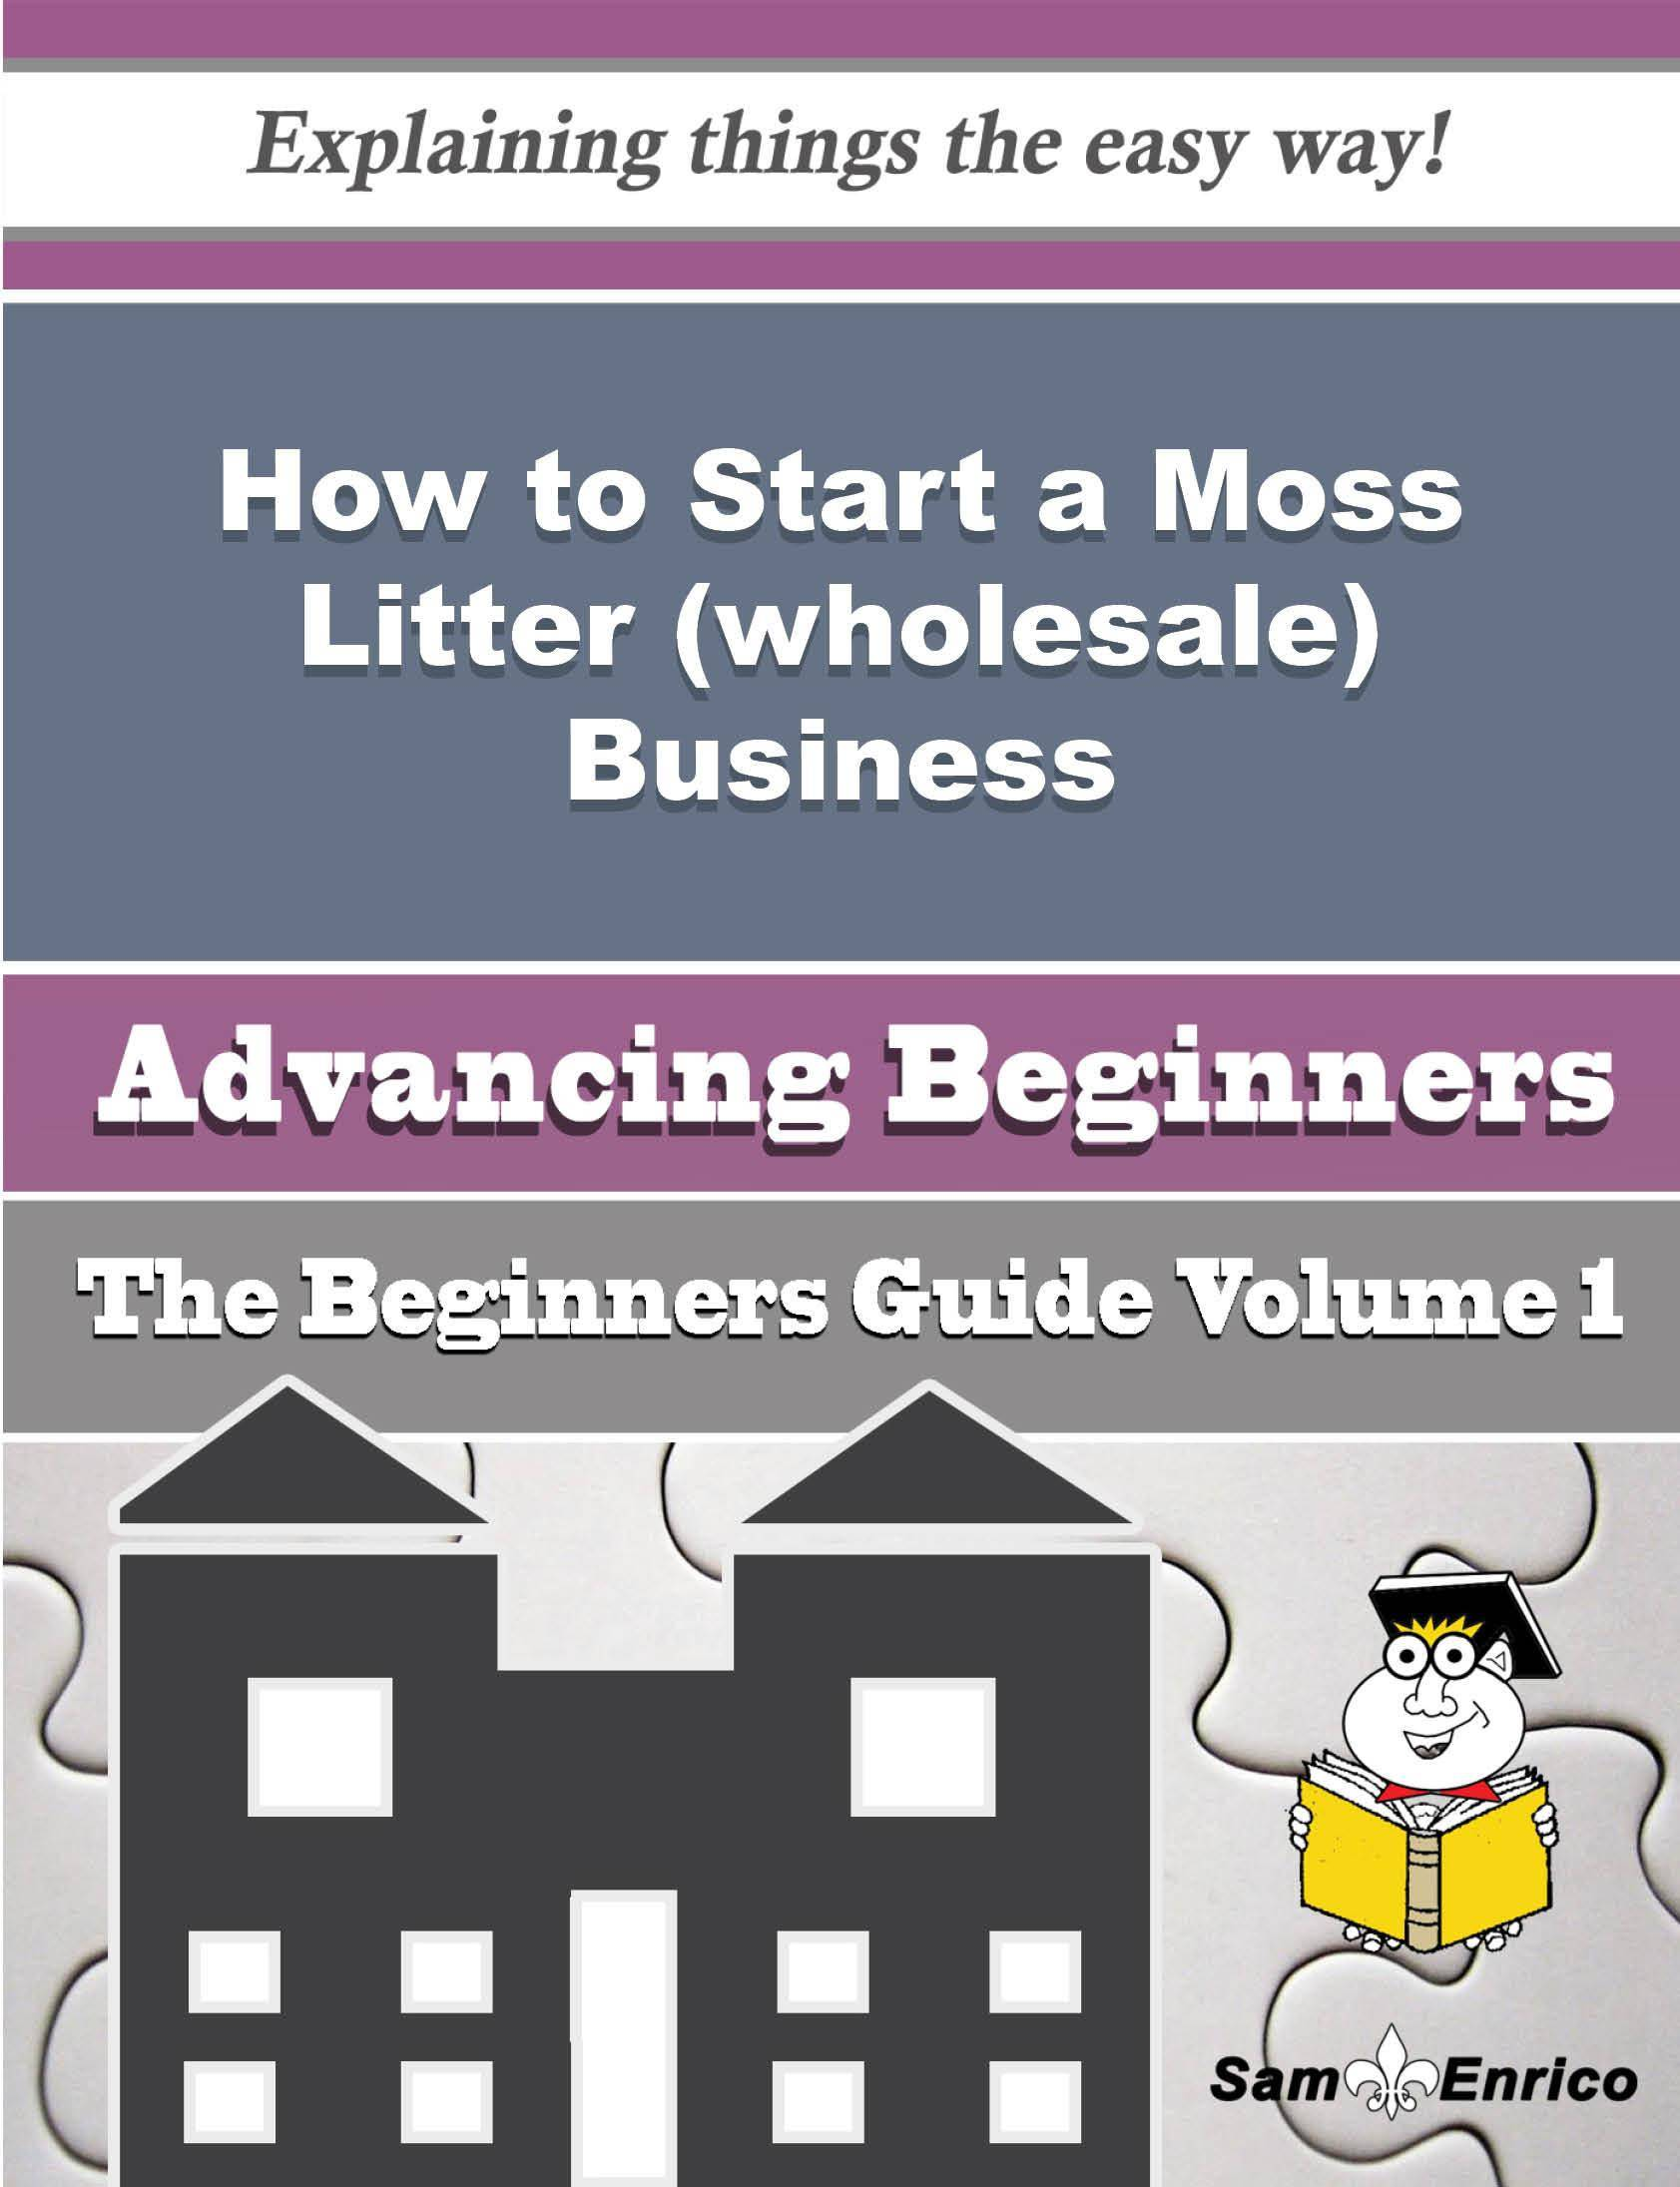 How to Start a Moss Litter (wholesale) Business (Beginners Guide)